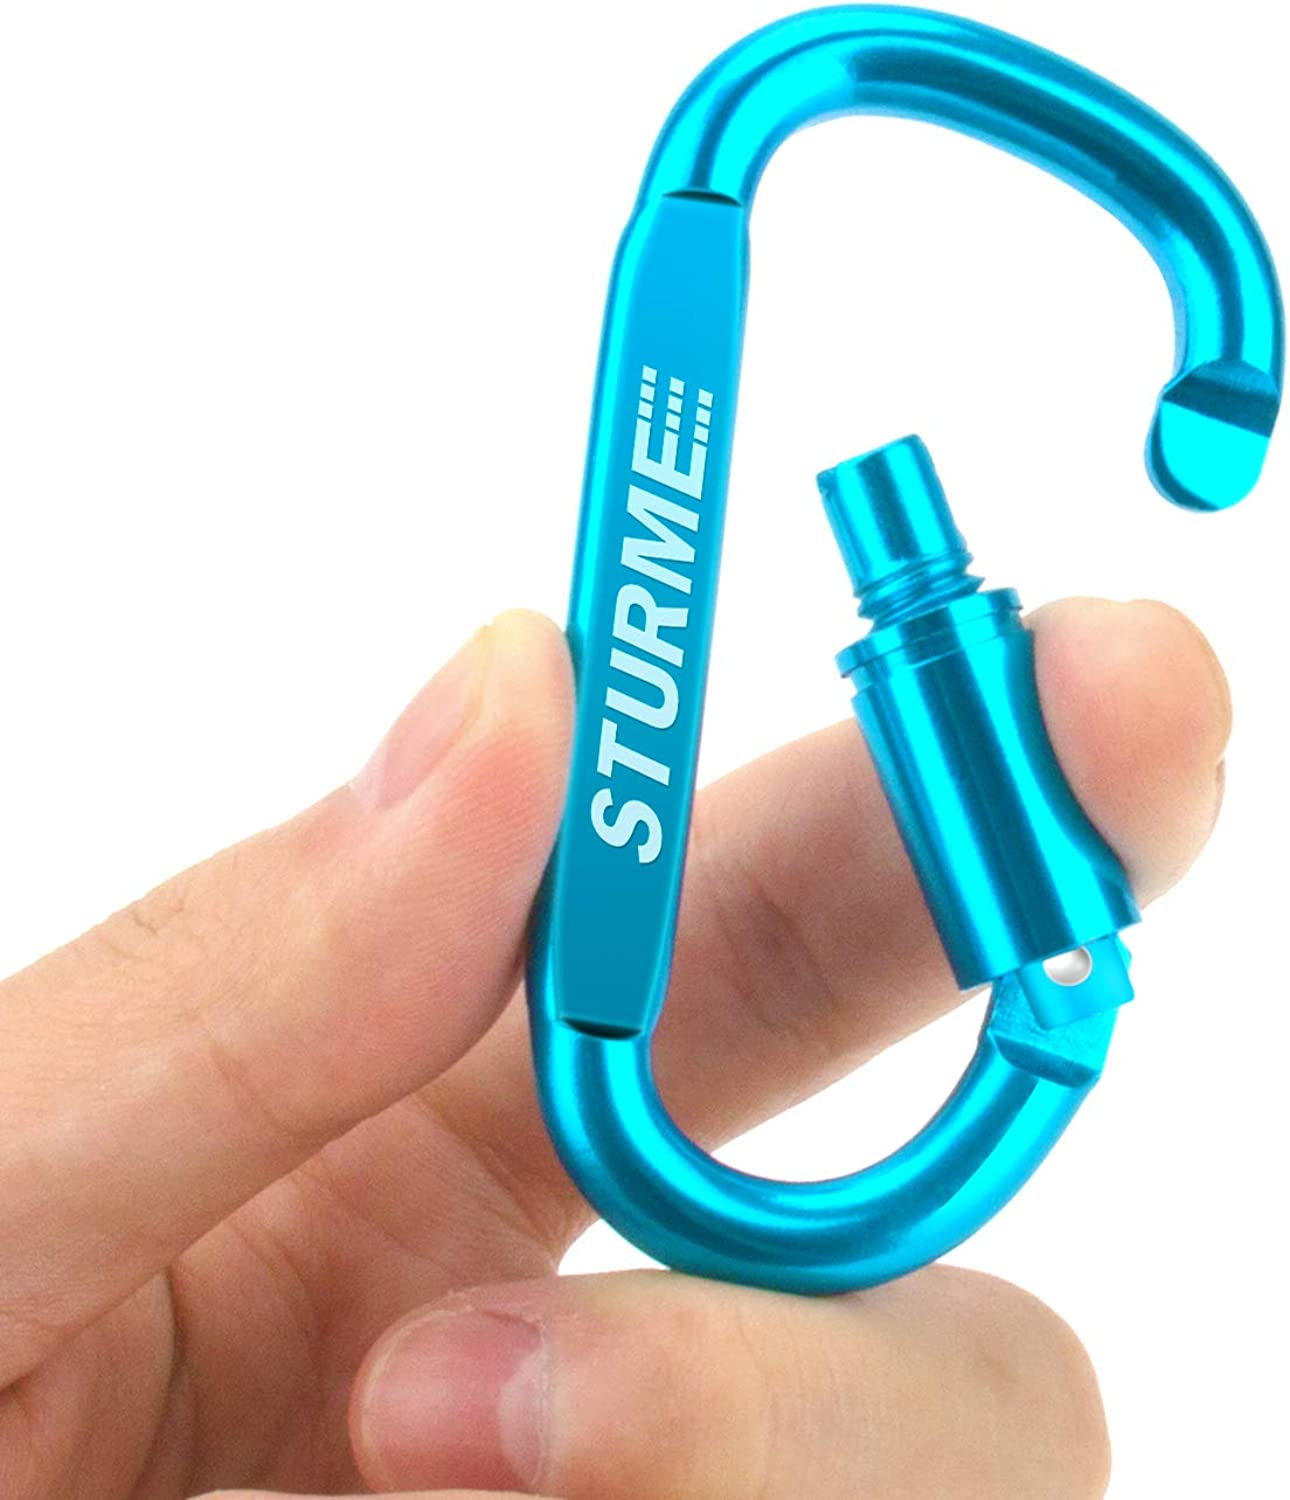 STURME Carabiner Clip Aluminum D-Ring Locking Durable Strong and Light Large Carabiners Clip Set for Outdoor Camping Screw Gate Lock Hooks Spring Link Improved Design Pack 9 Pack